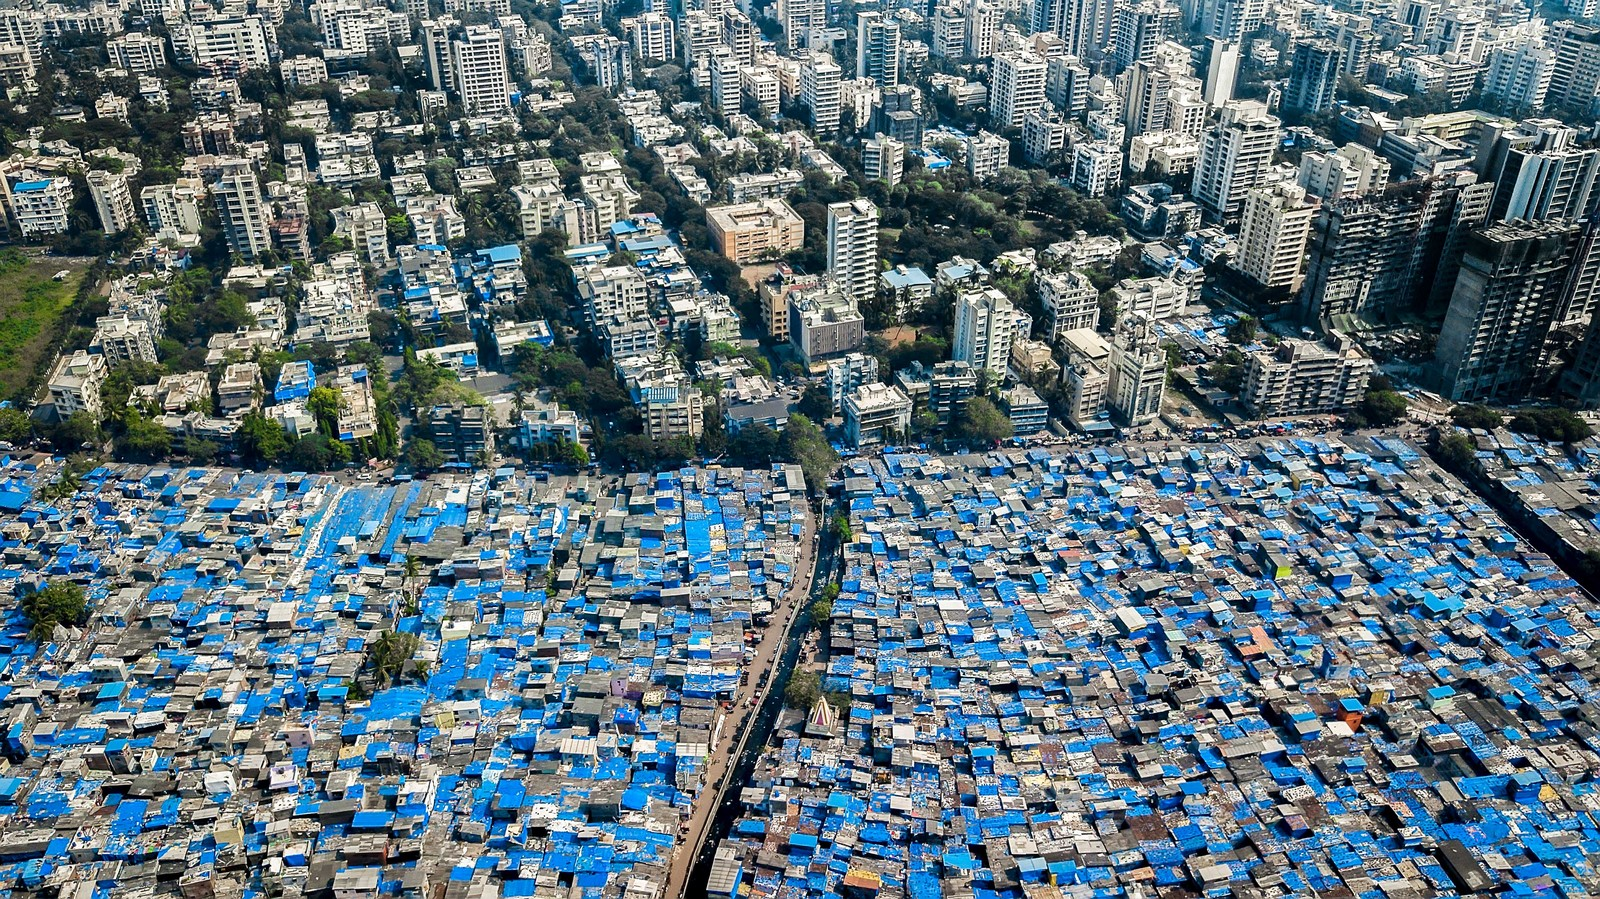 Contrast in the cityscape of Mumbai - Sheet1